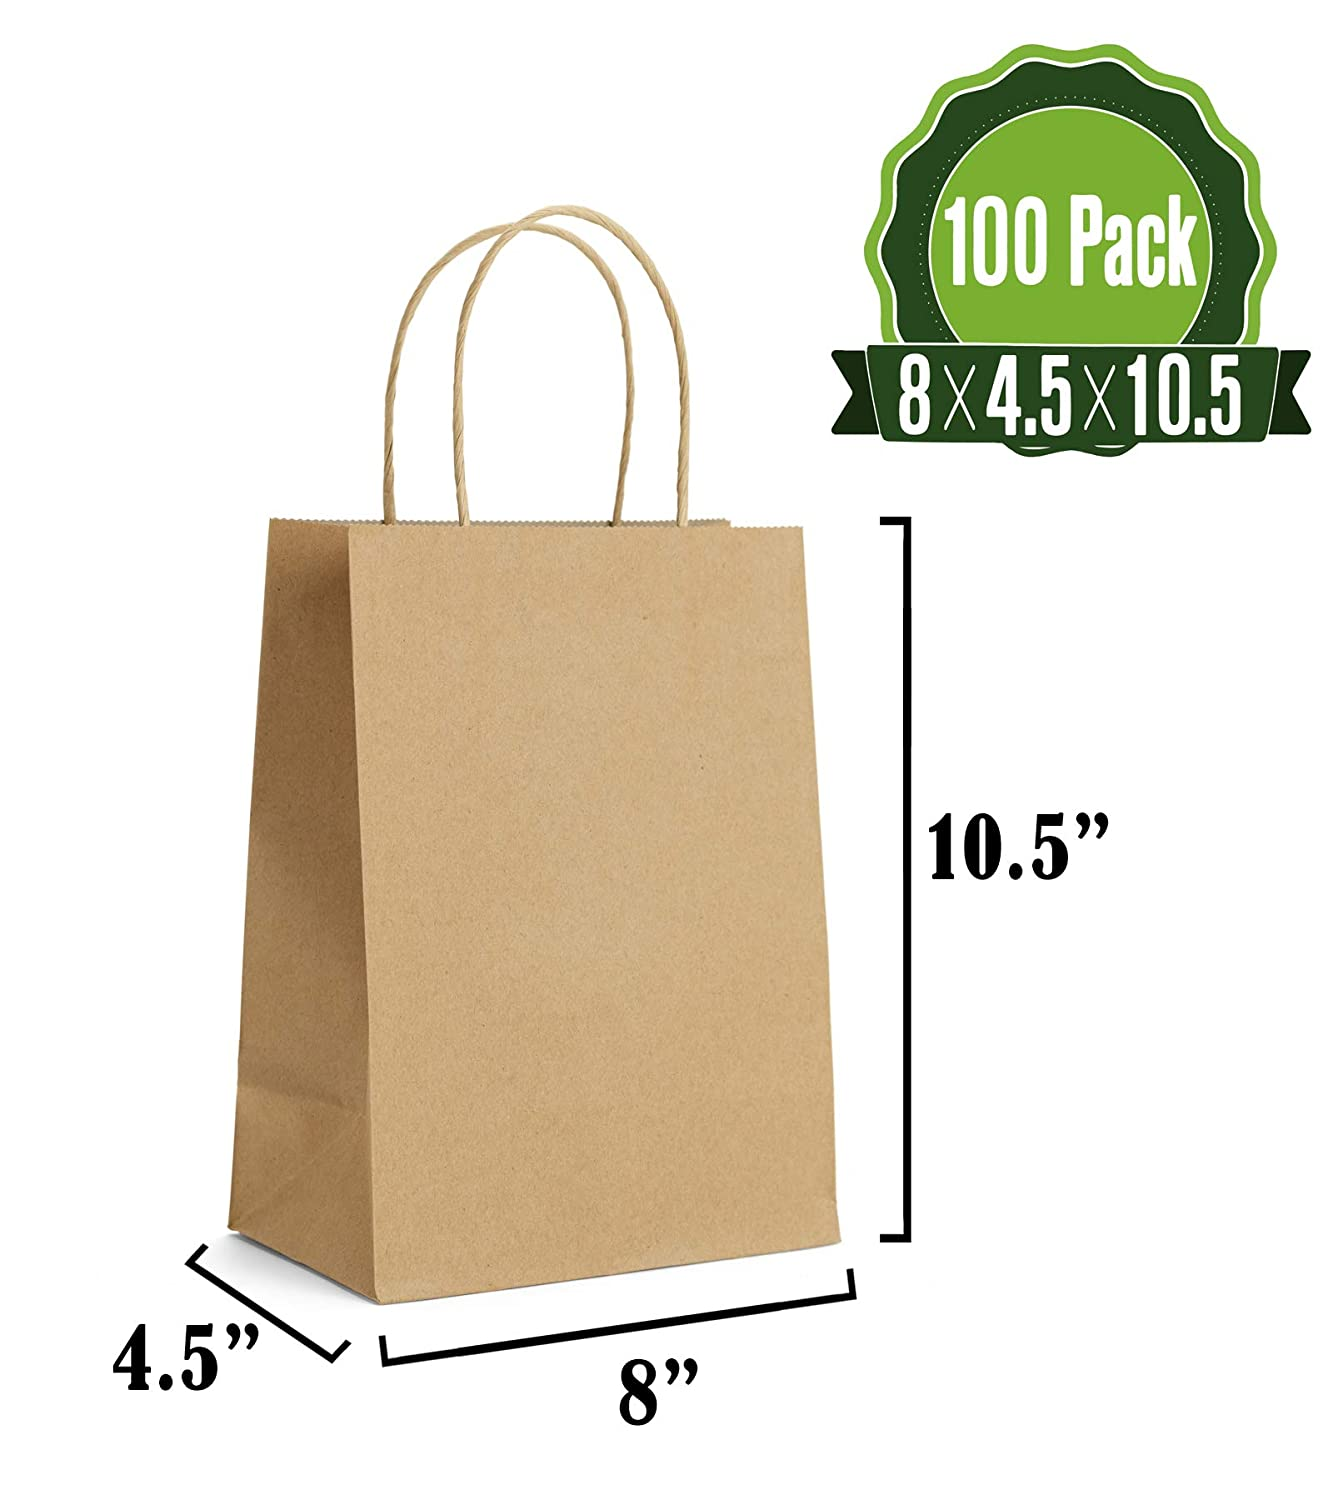 Brown Kraft Paper Gift Bags Bulk with Handles 8 X 4.5 X 10.5 [100Pcs]. Ideal for Shopping, Packaging, Retail, Party, Craft, Gifts, Wedding, Recycled, ...